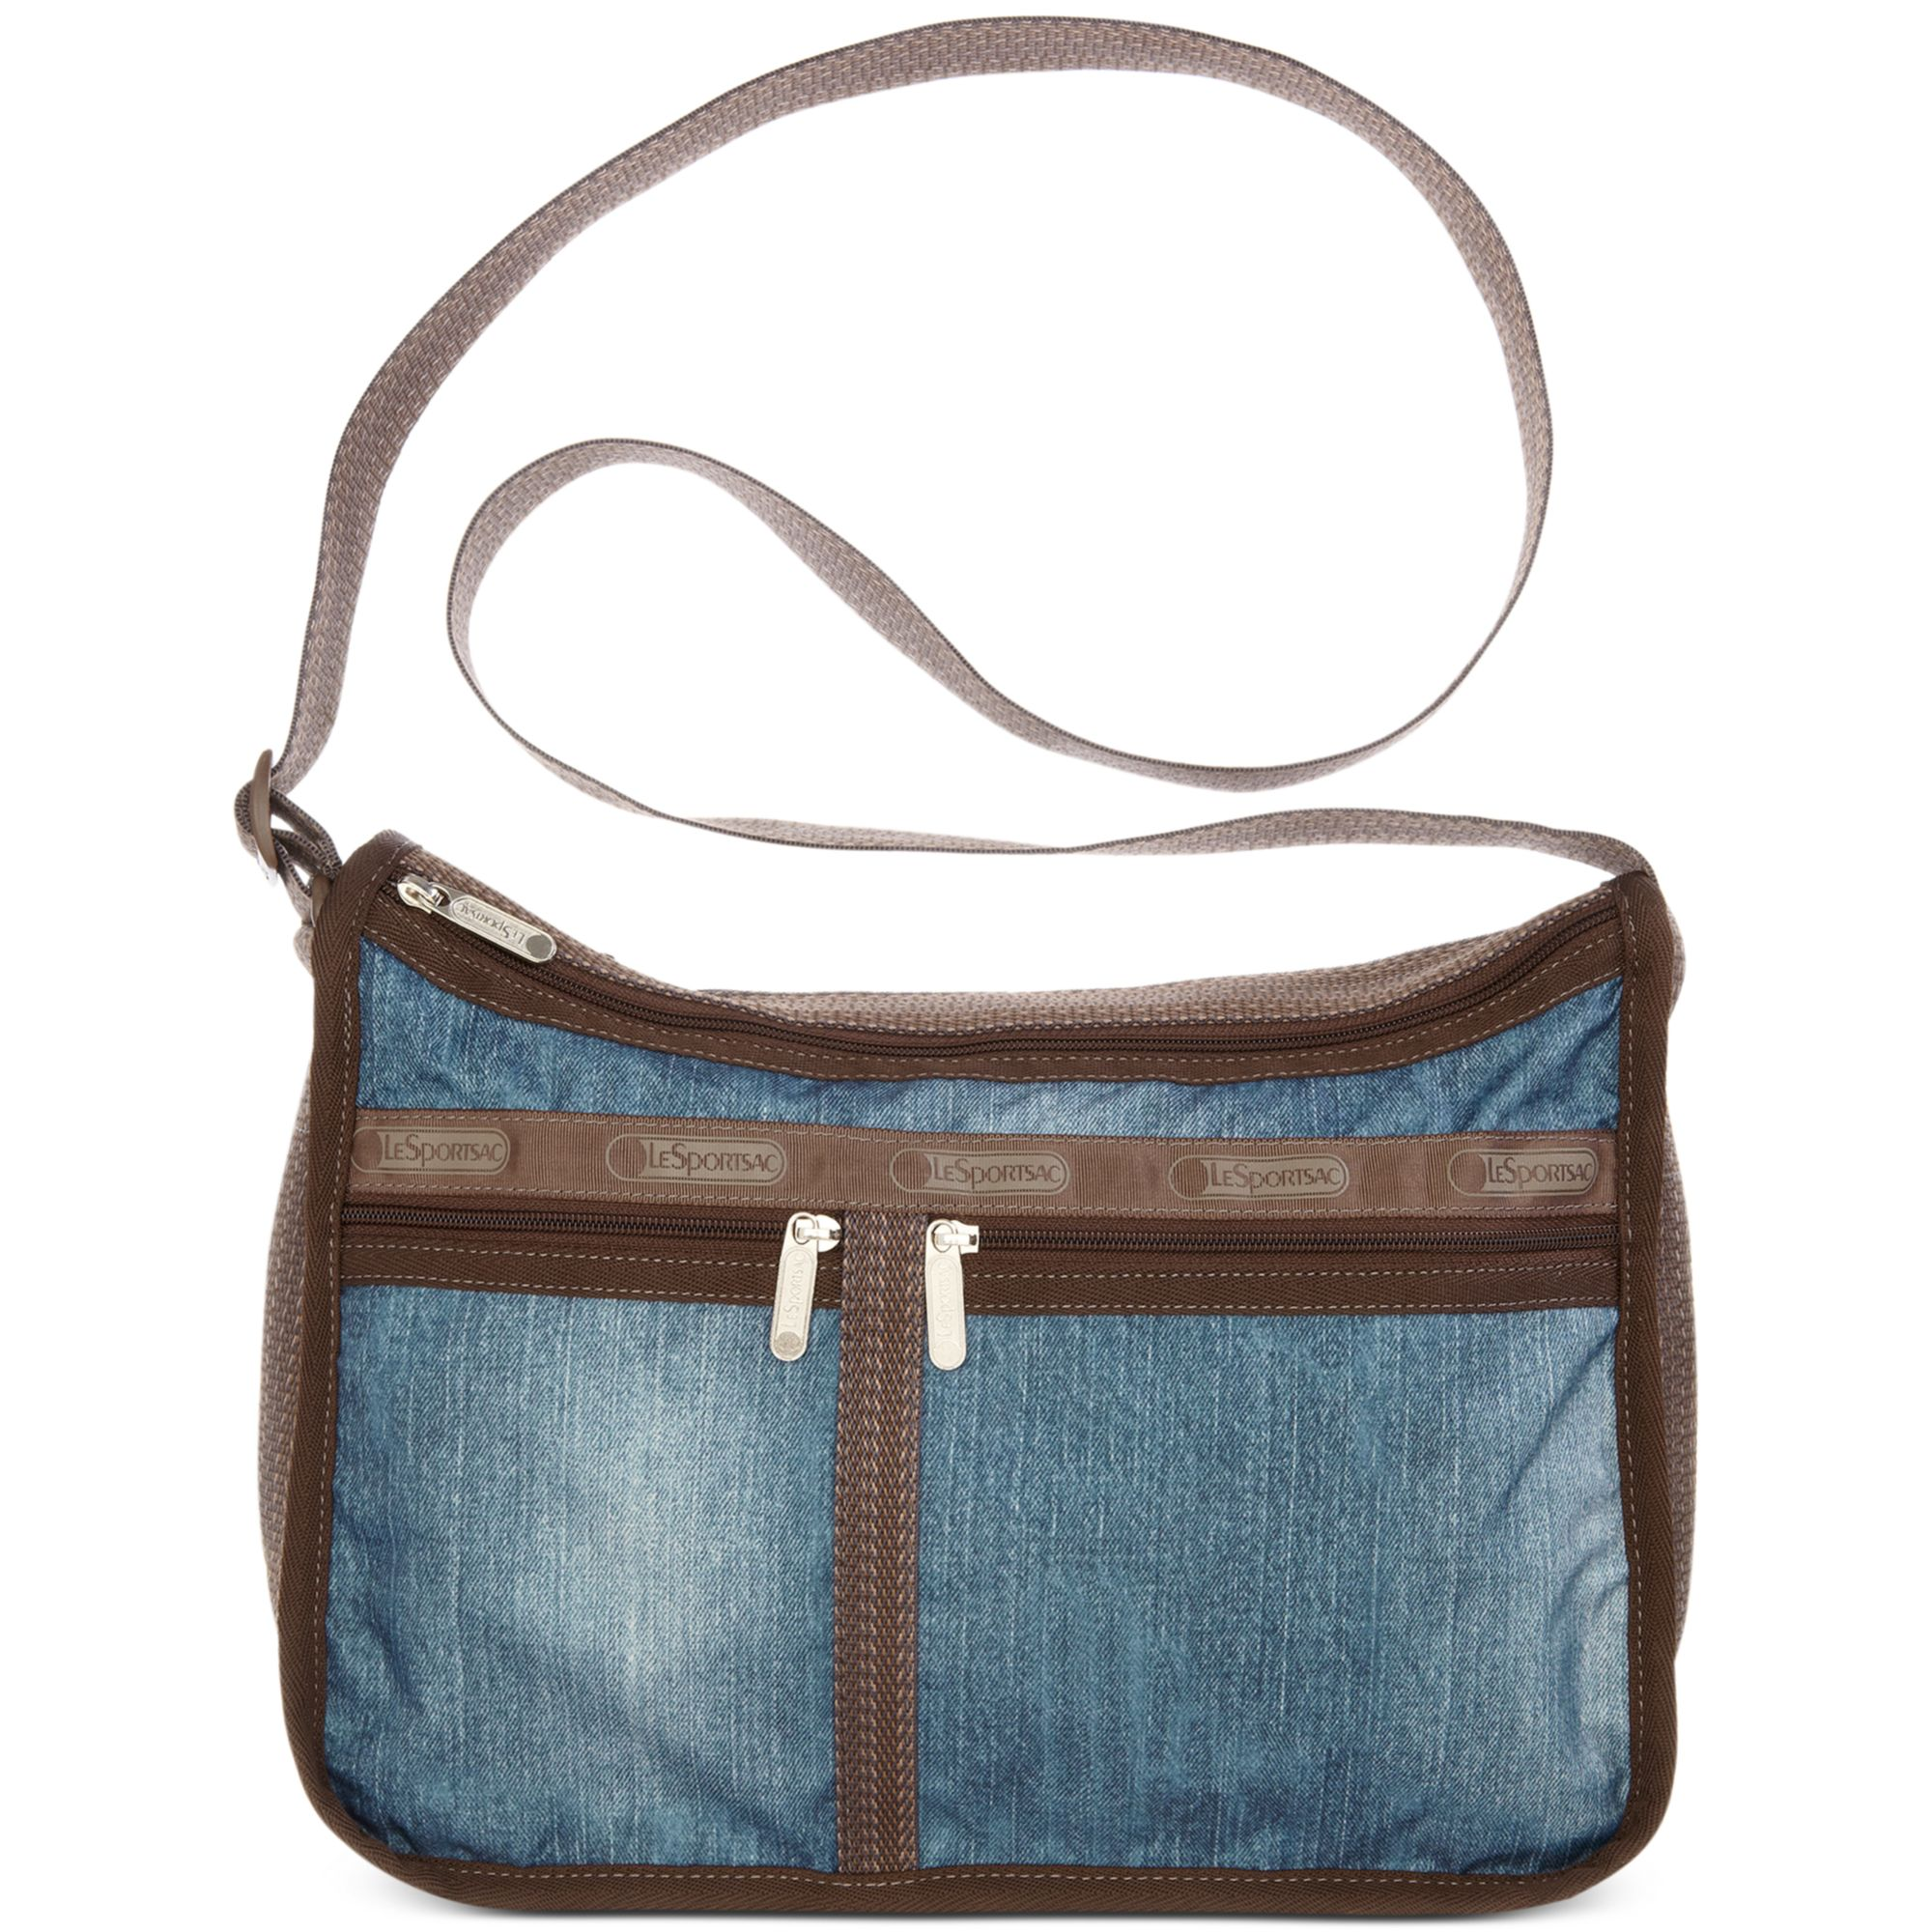 Shop Women's The Sak Bags on Lyst. Track over The Sak Bags for stock and sale updates. Track over The Sak Bags for stock and sale updates. Search thousands of fashion stores in one place.